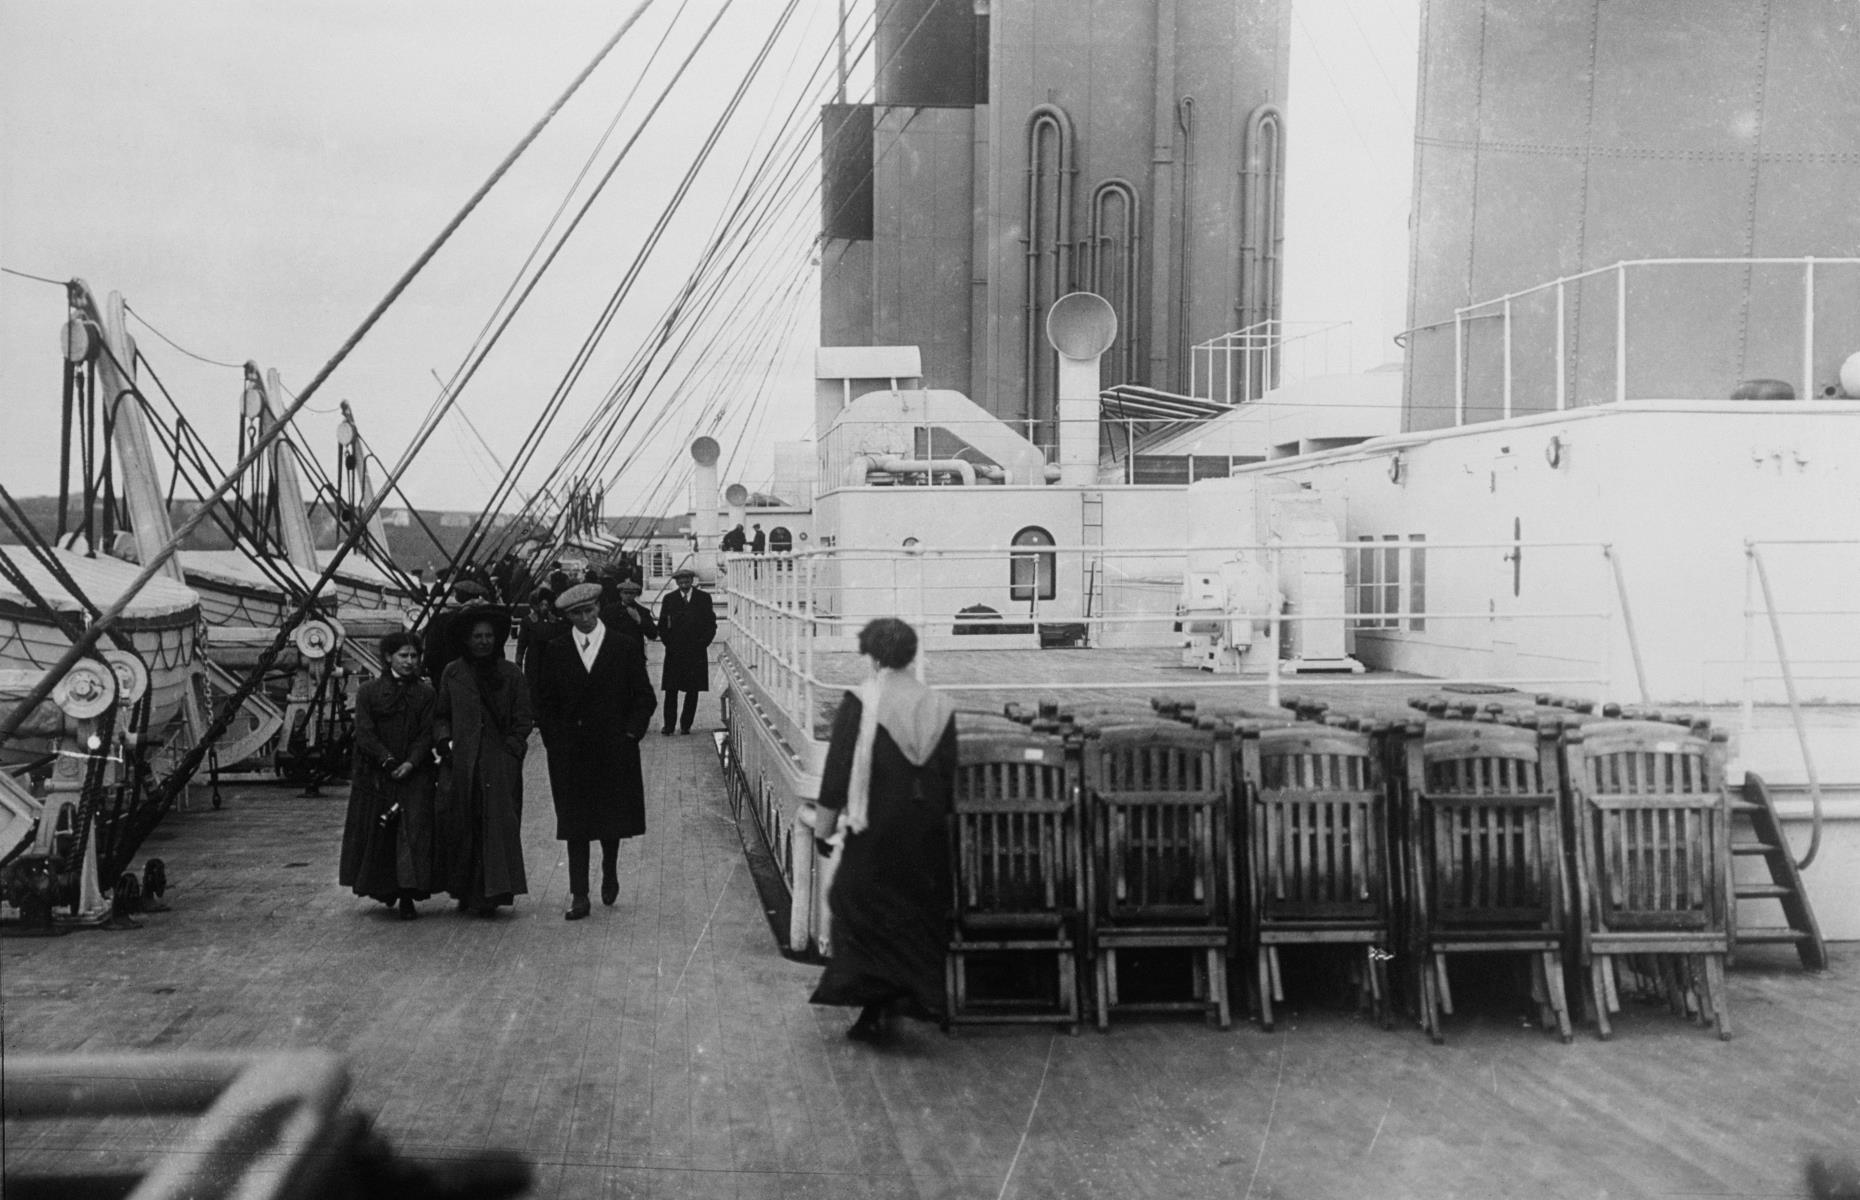 Slide 26 of 46: Second class passengers did have access to three promenade areas where they could relax or take a stroll around the deck. Passengers could rent one of the ship's wooden deck chairs for three shillings or $1 dollar per person for the whole voyage.